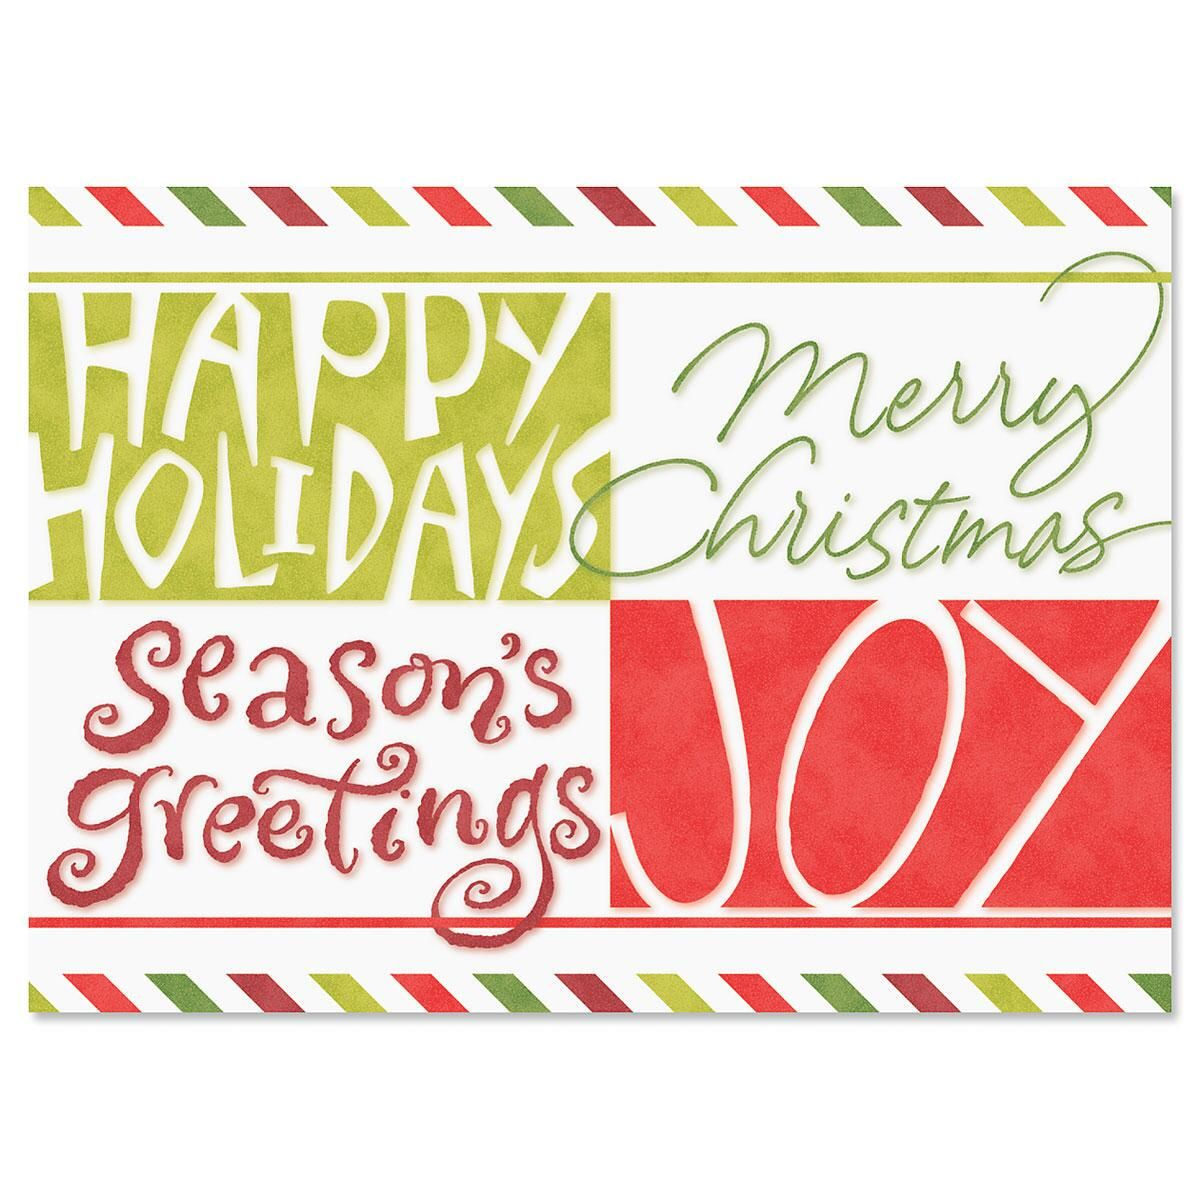 Big Greetings Personalized Christmas Cards - Set of 18